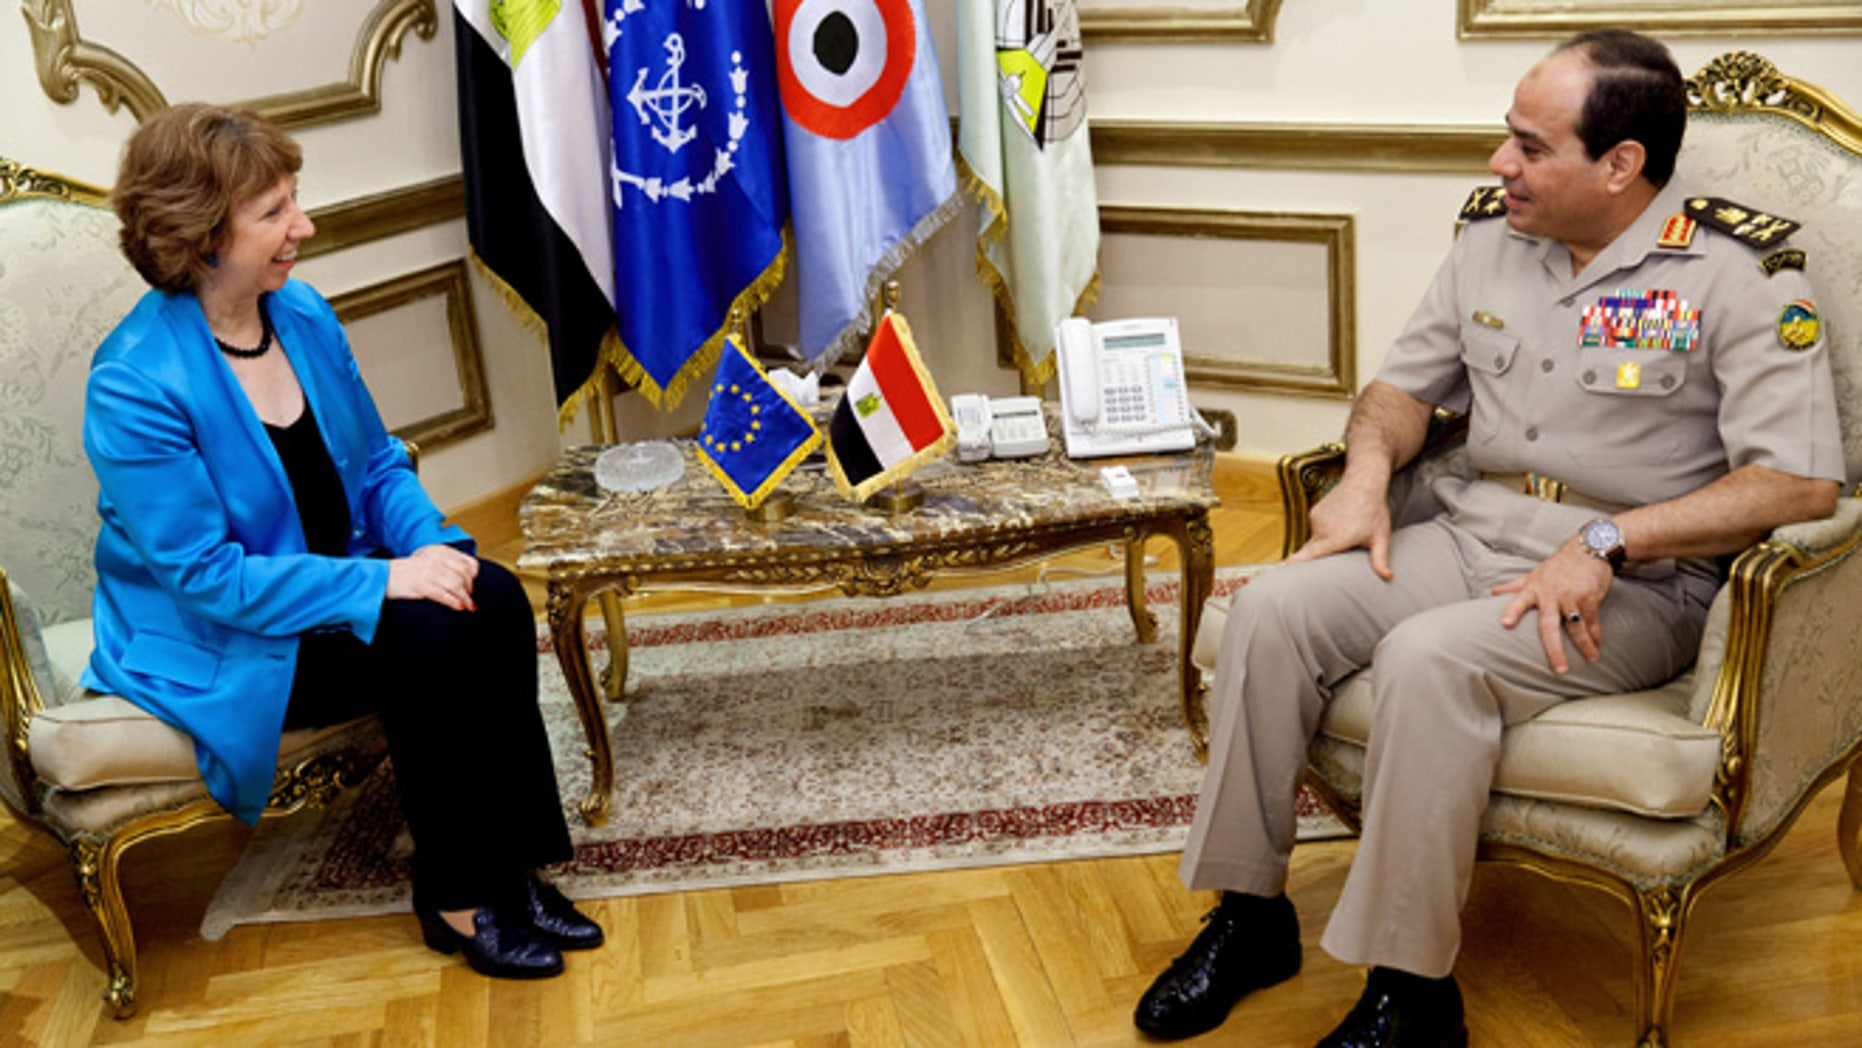 Oct. 3, 2013: In this image released by the Delegation of European Union in Egypt, Egyptian Minister of Defense, Abdel-Fattah el-Sissi, right, meets with High Representative of the European Union, Catherine Ashton in Cairo, Egypt.